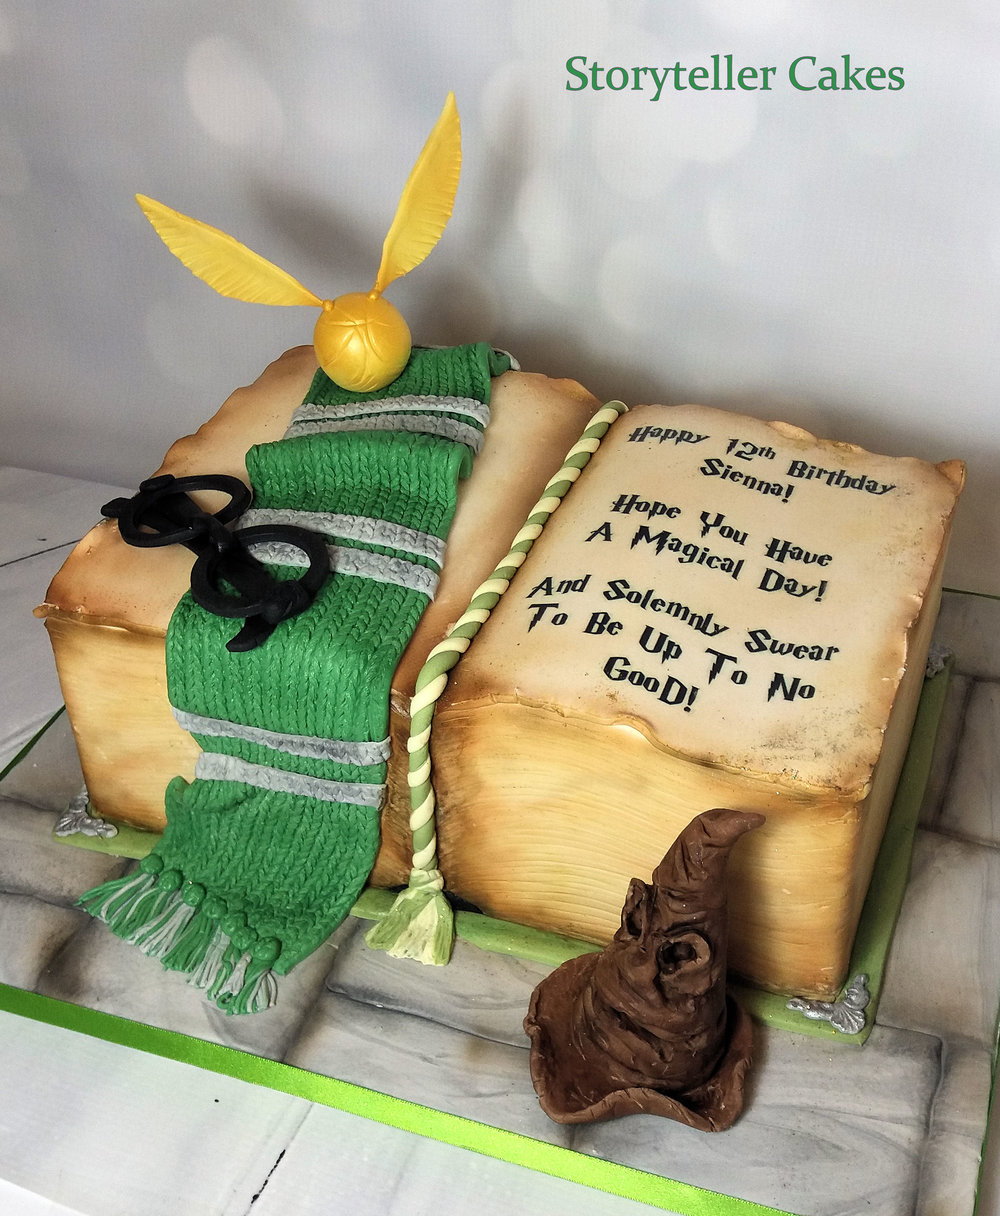 Harry Potter Book Cake 1.jpg